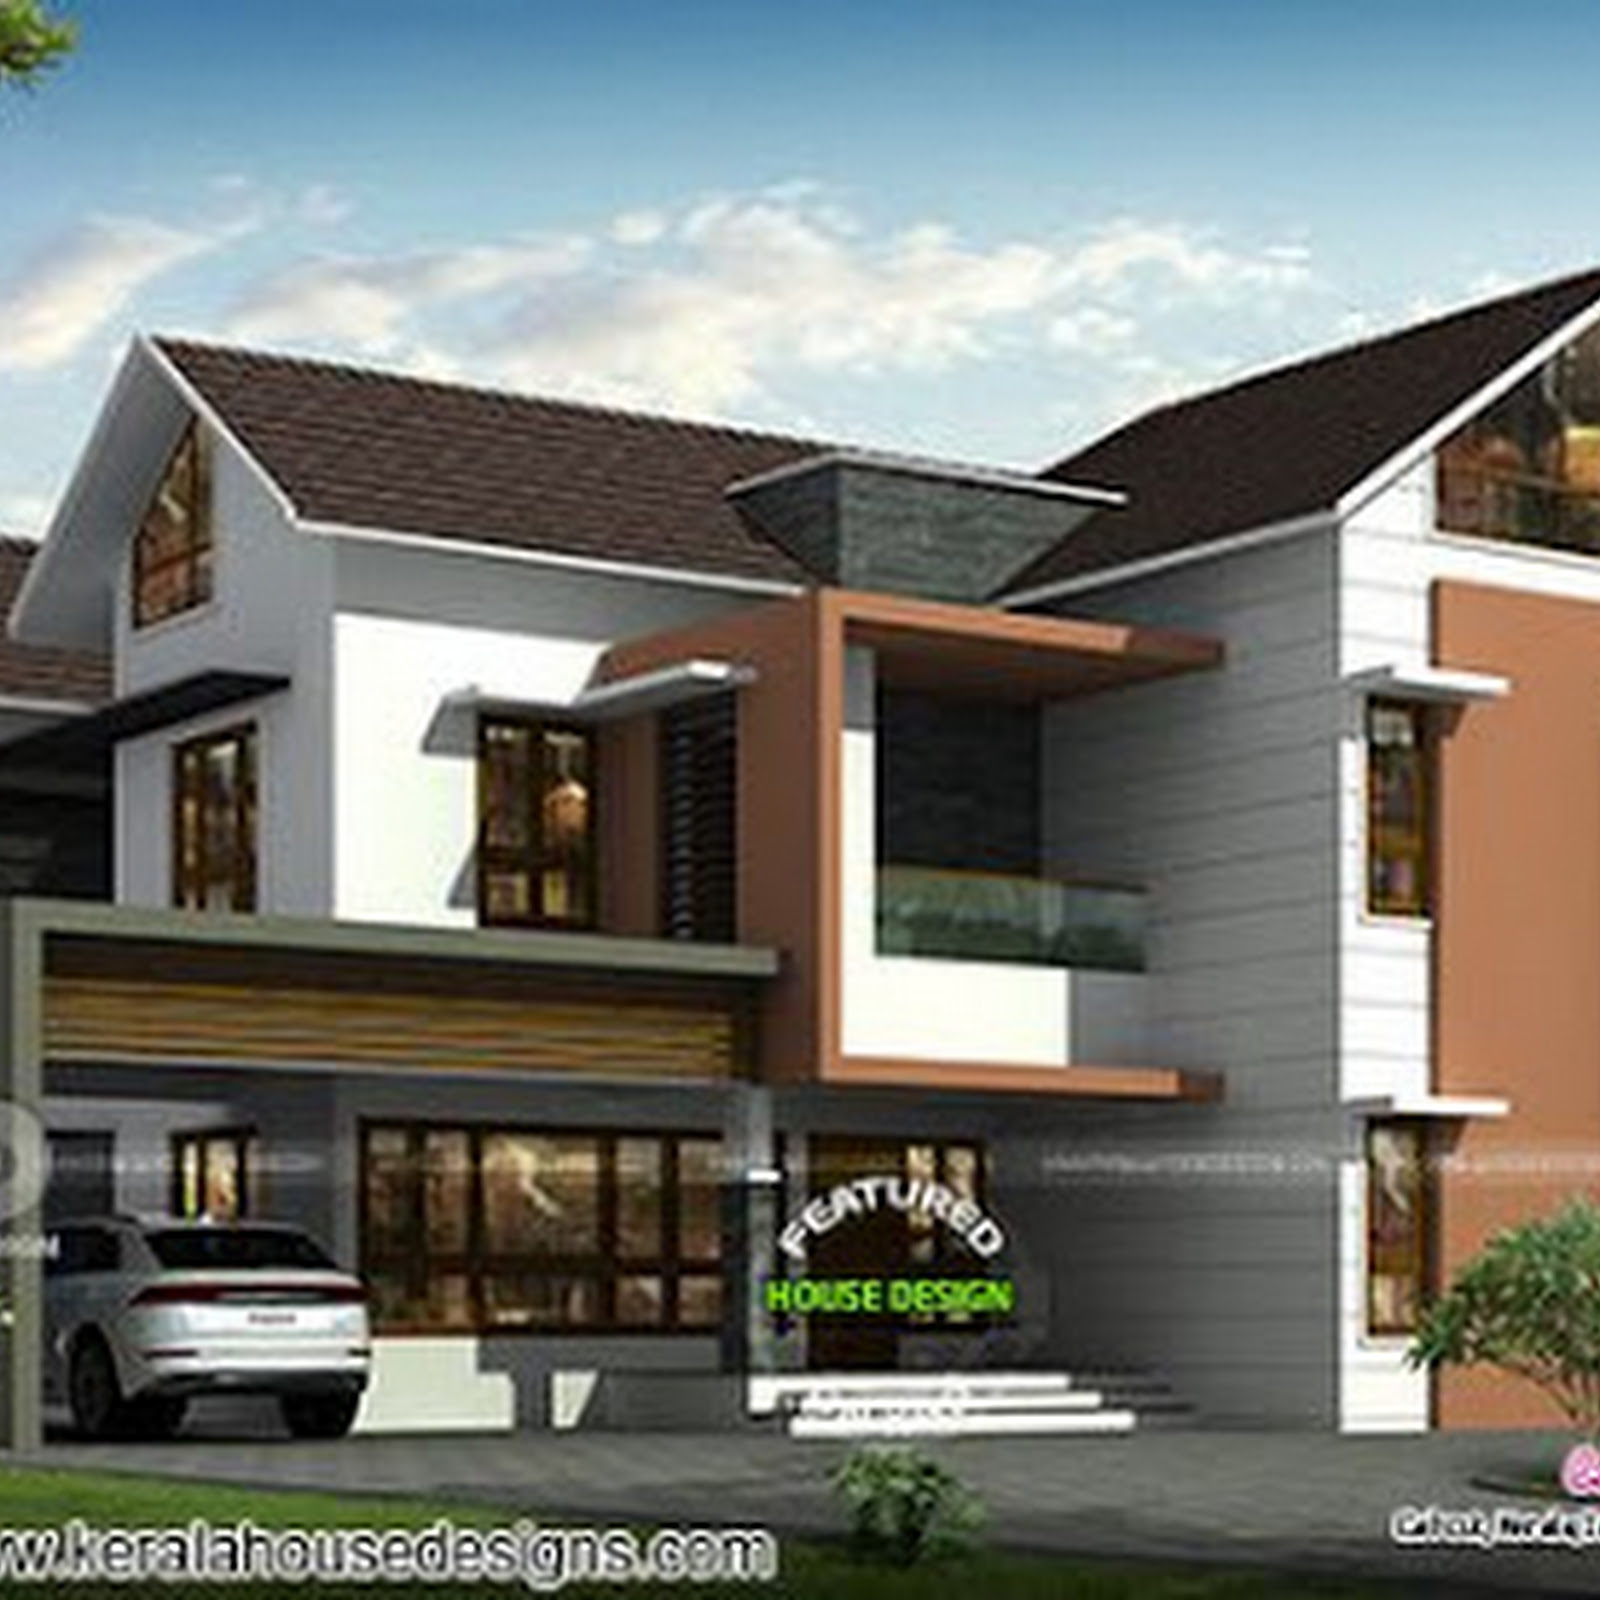 Luxurious 5 bedroom mixed roof house design